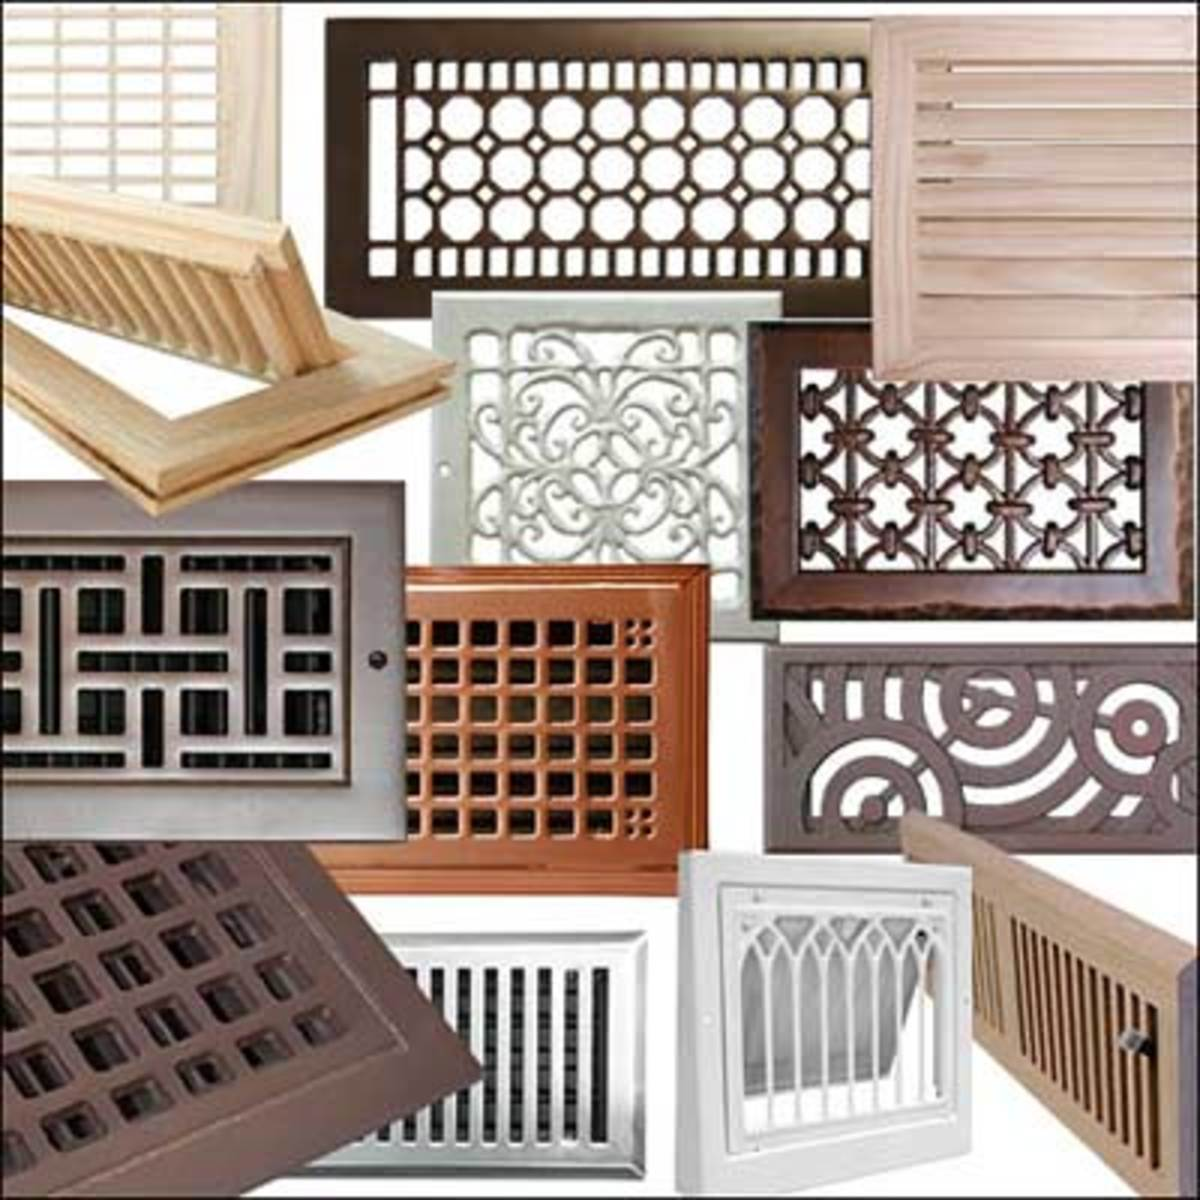 #8F583C HeatRegisters.com Arts & Crafts Homes And The Revival  Most Effective 3635 Heating Vent Covers pictures with 1200x1200 px on helpvideos.info - Air Conditioners, Air Coolers and more